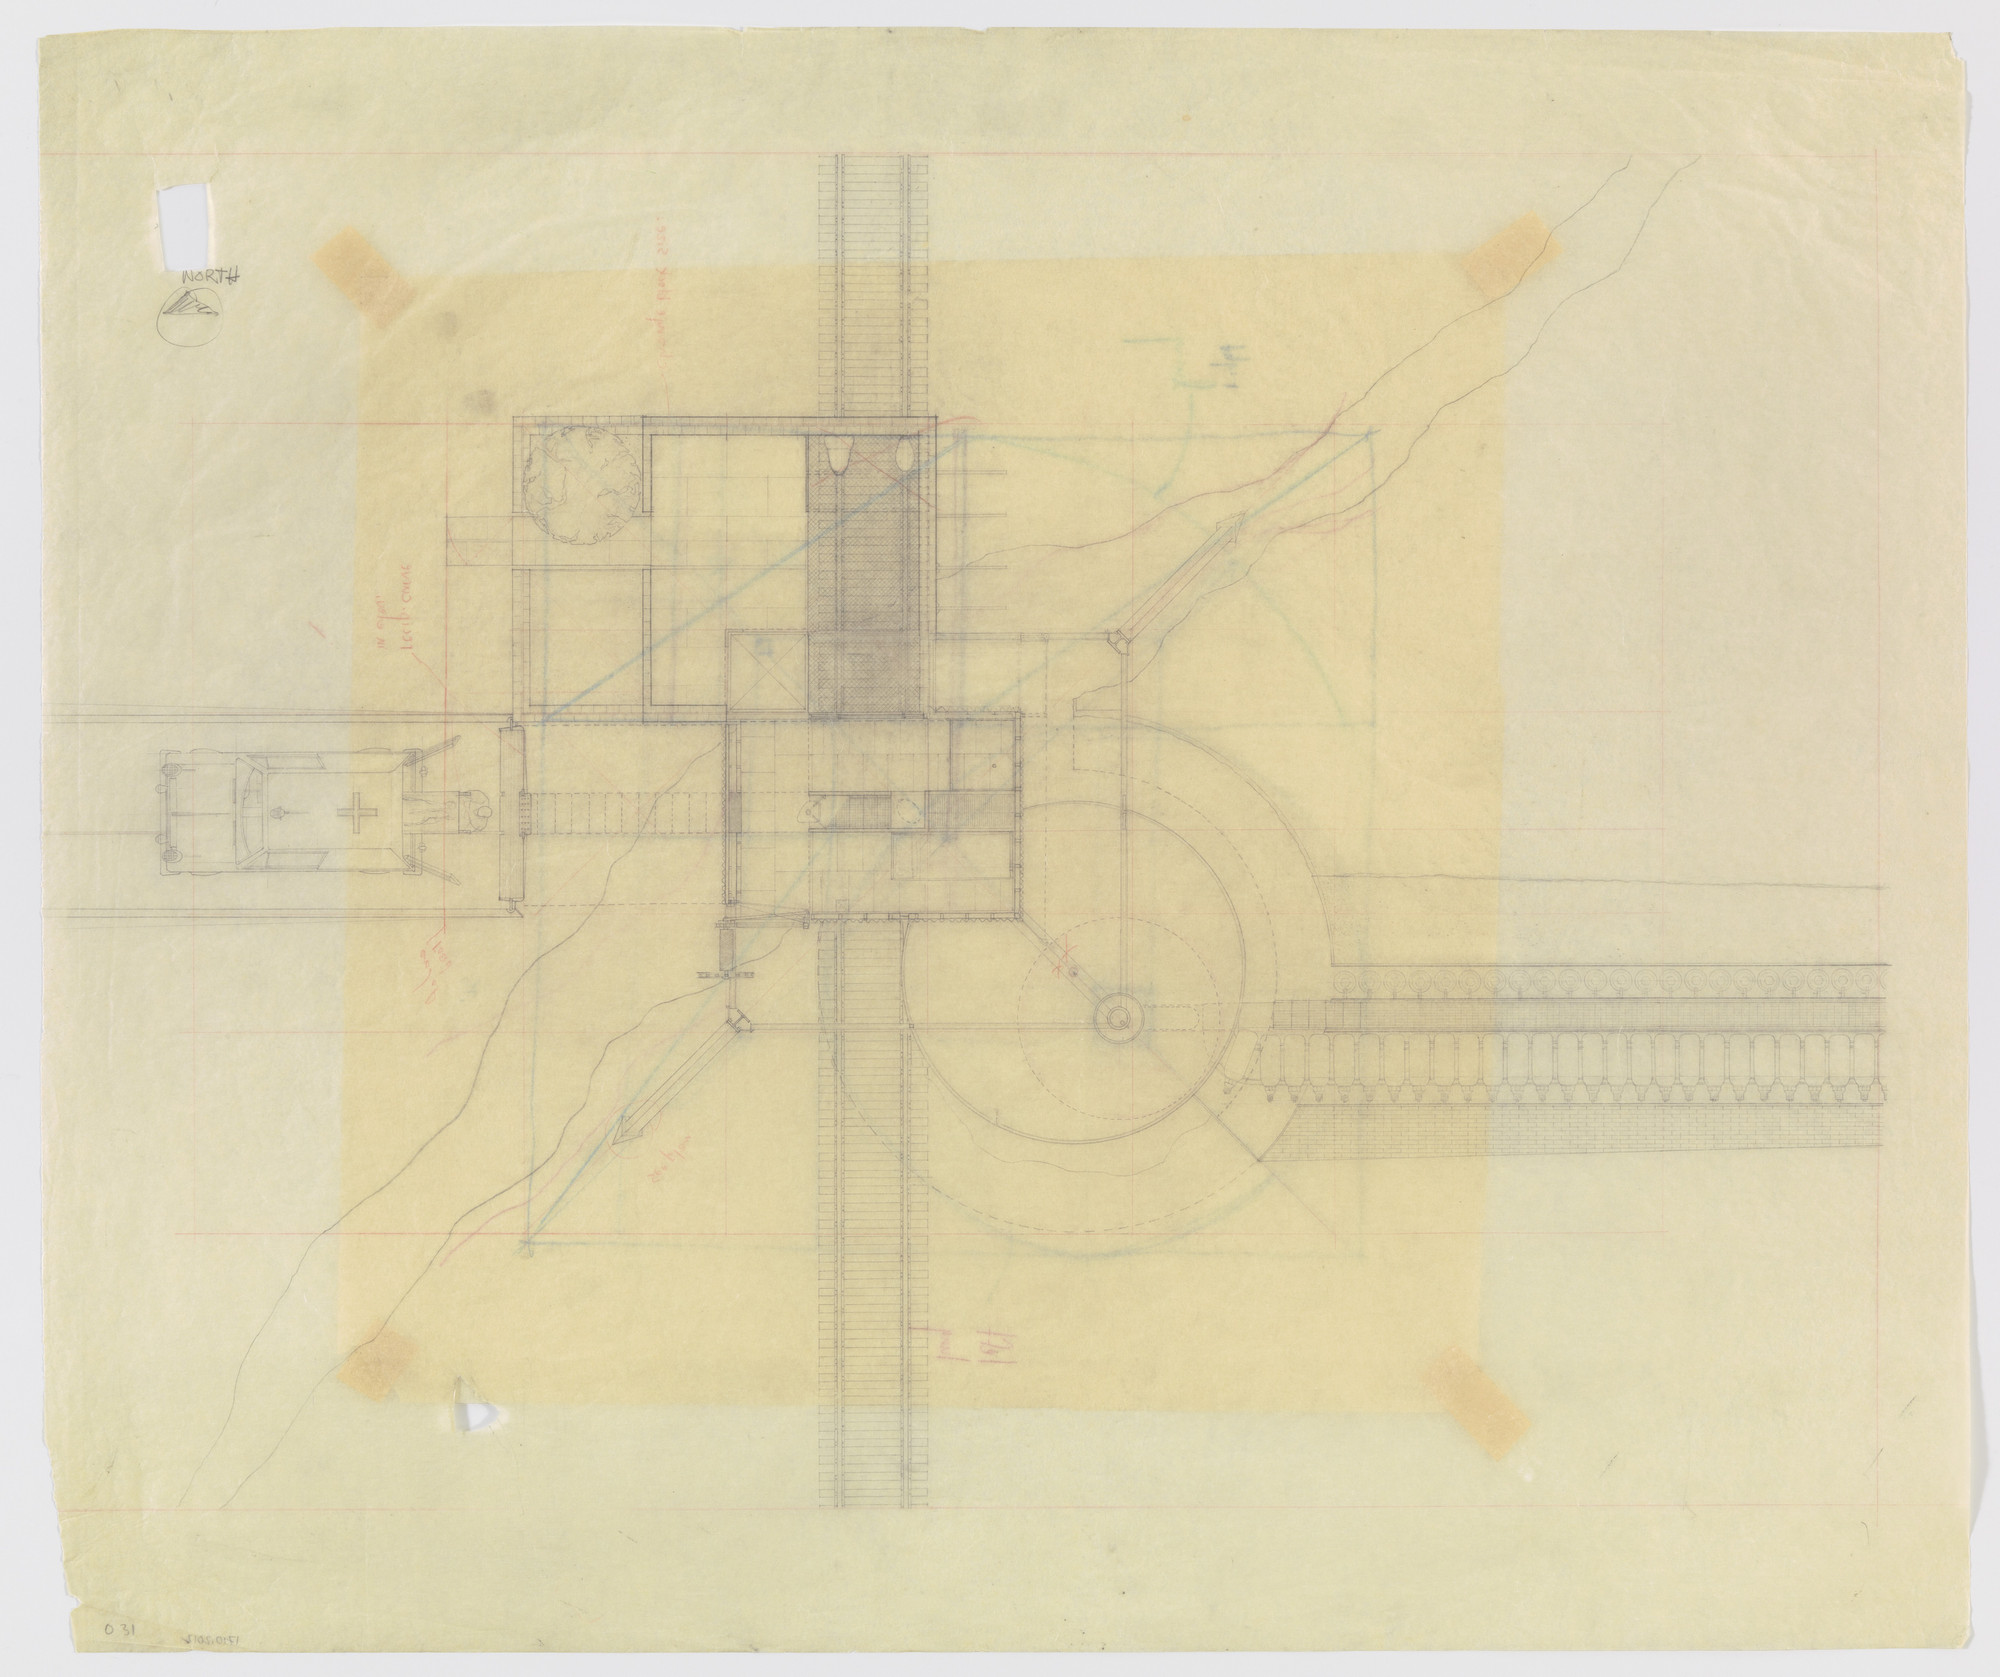 Douglas Darden. Oxygen House Project (Plan). 1988